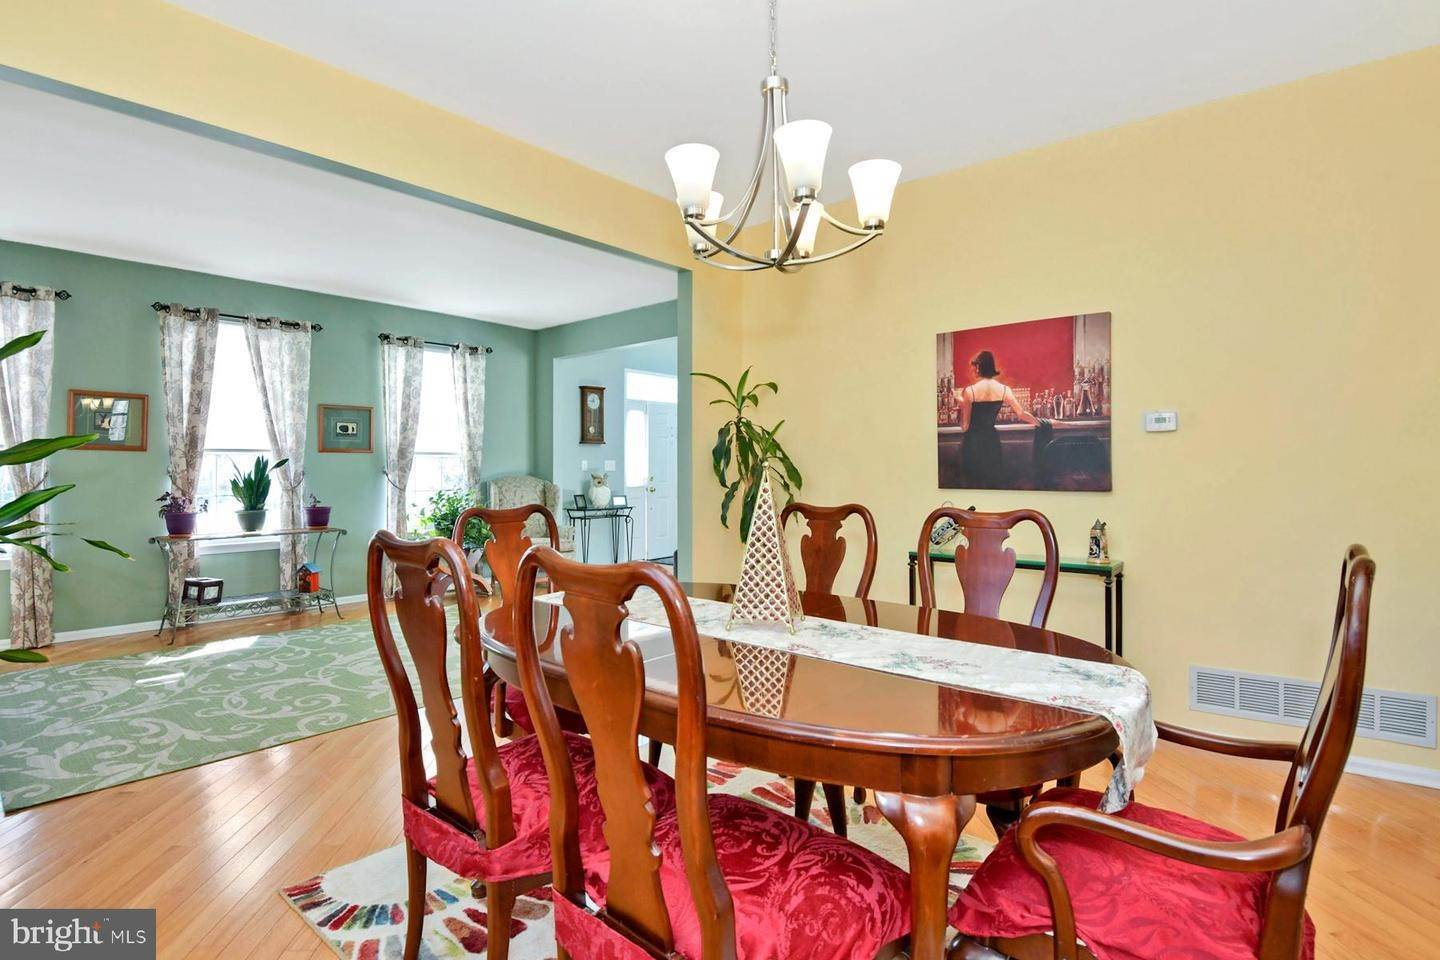 10. Detached House for Sale at 34 OAKMONT TER Hightstown, New Jersey 08520 United States